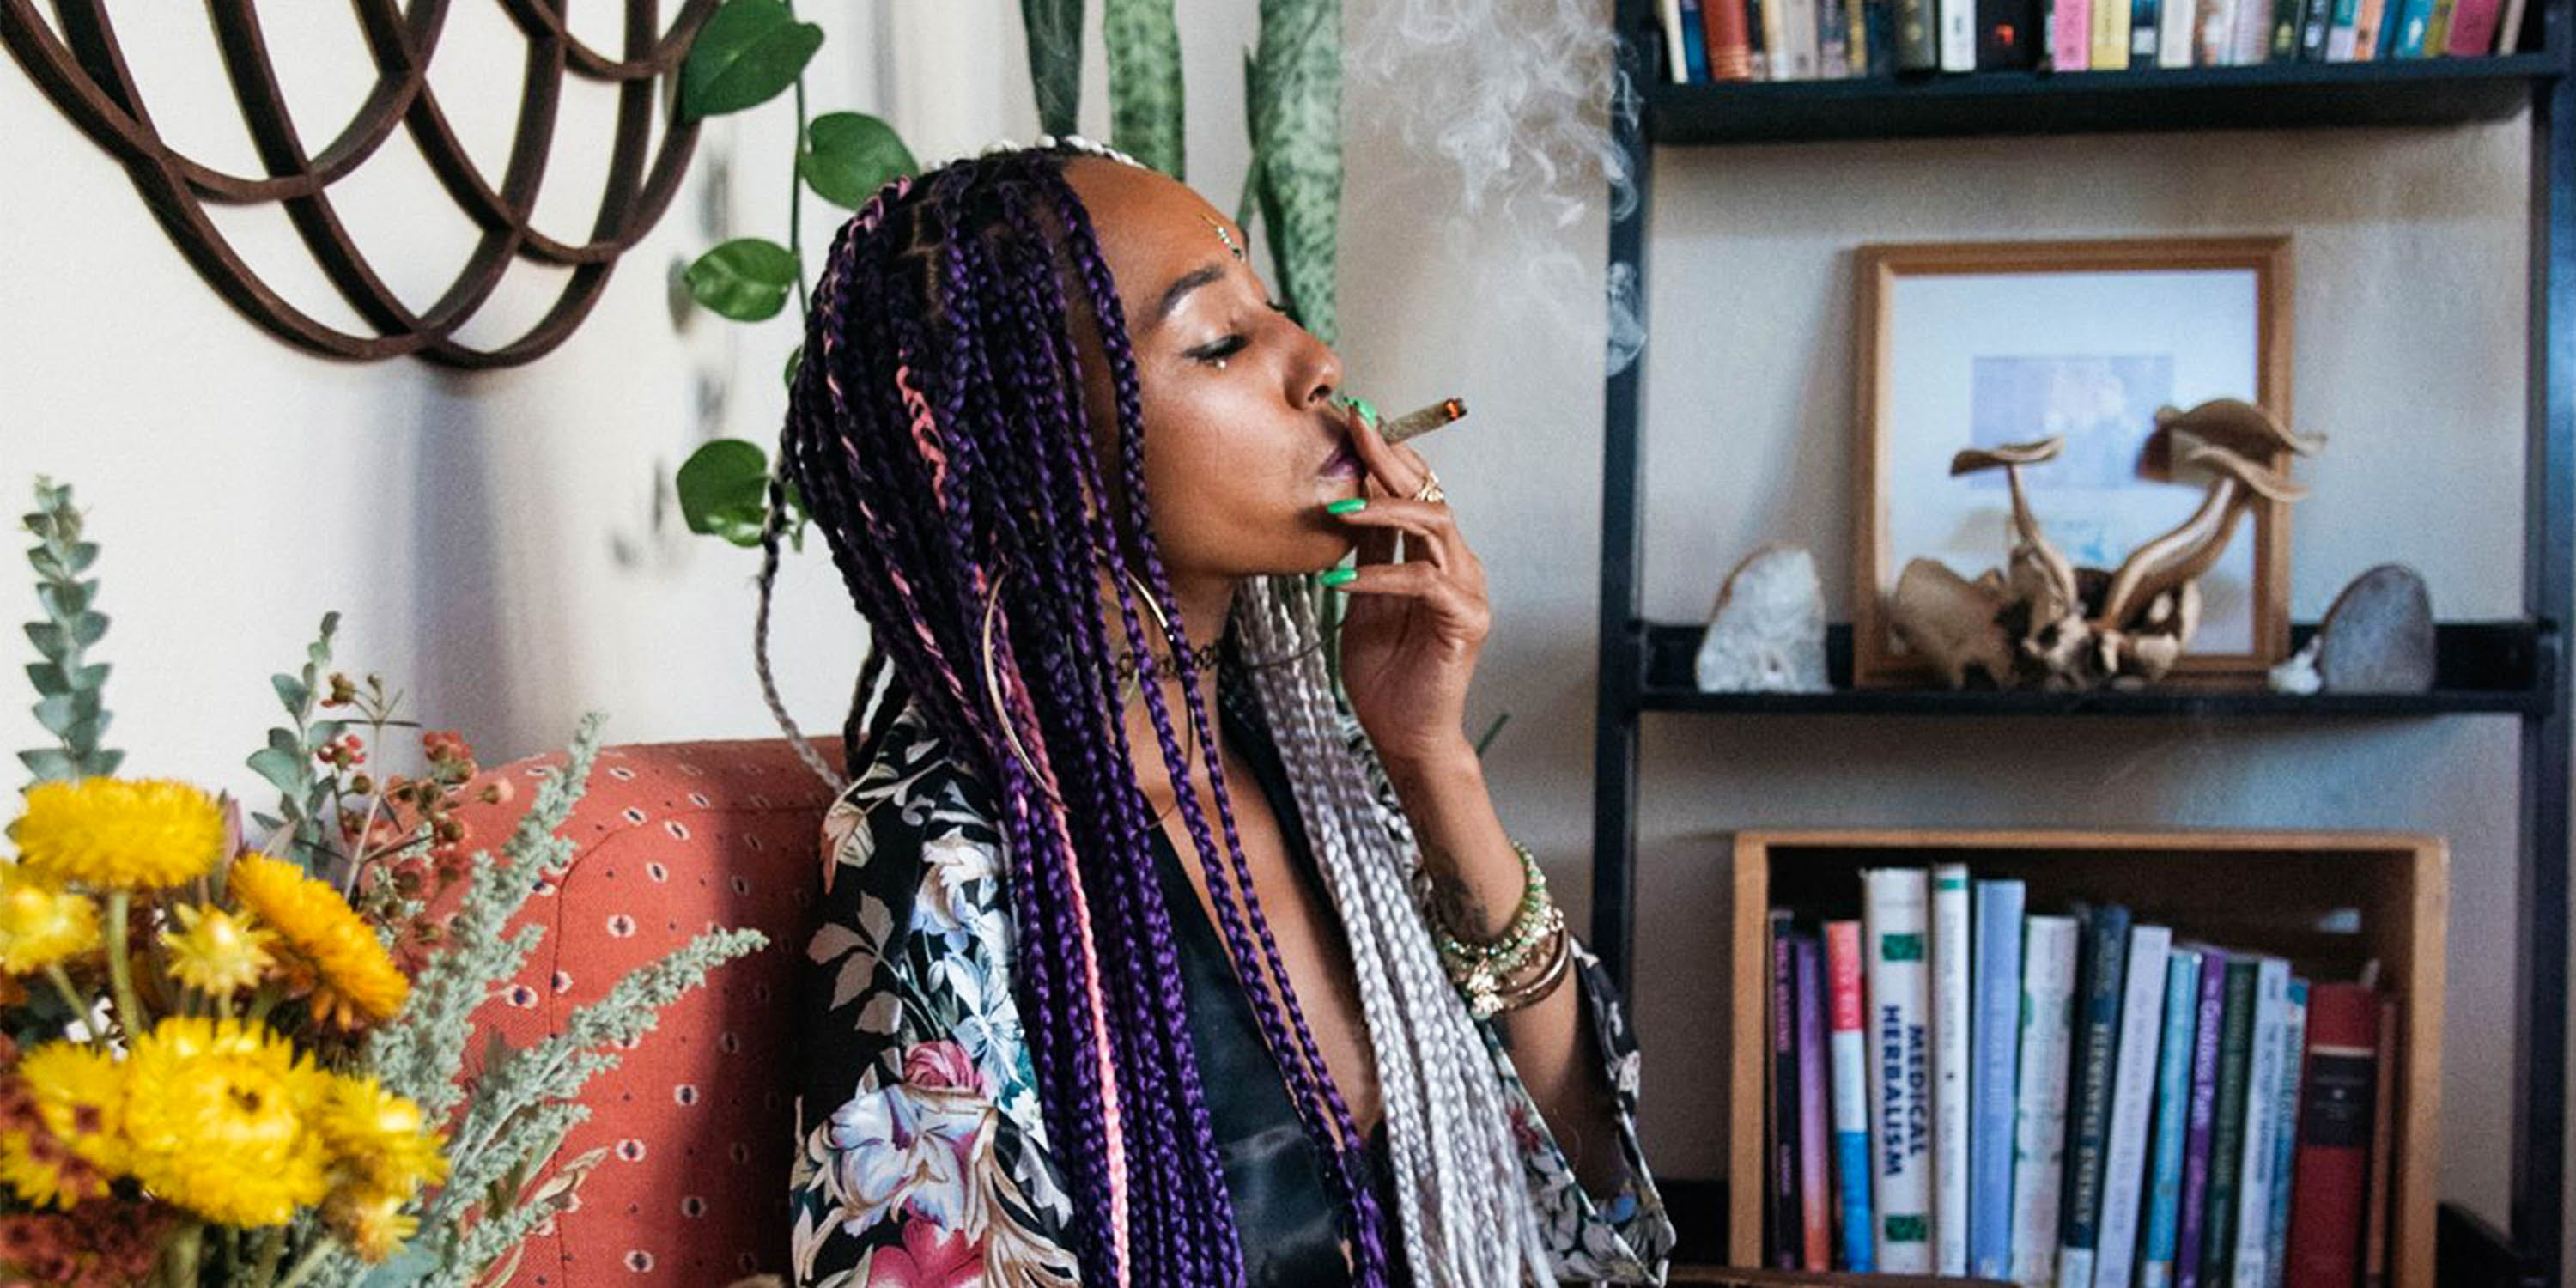 Everything you need to know to find the best rolling papers